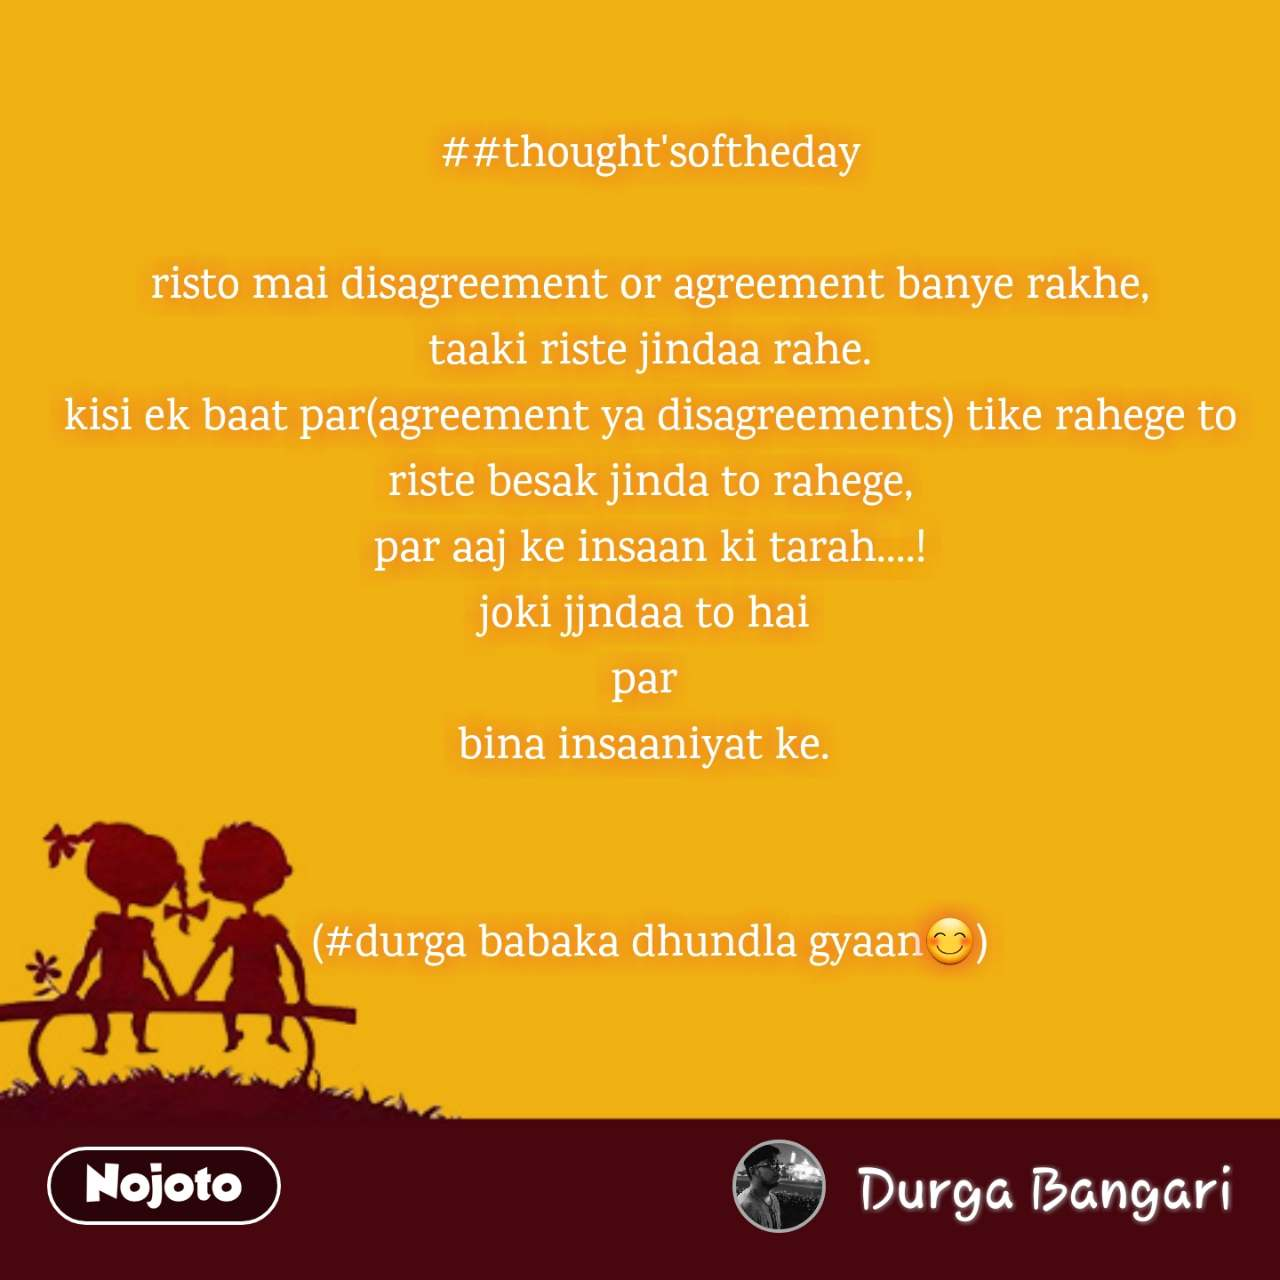 ##thought'softheday  risto mai disagreement or agreement banye rakhe, taaki riste jindaa rahe. kisi ek baat par(agreement ya disagreements) tike rahege to riste besak jinda to rahege, par aaj ke insaan ki tarah....! joki jjndaa to hai  par  bina insaaniyat ke.    (#durga babaka dhundla gyaan😊)